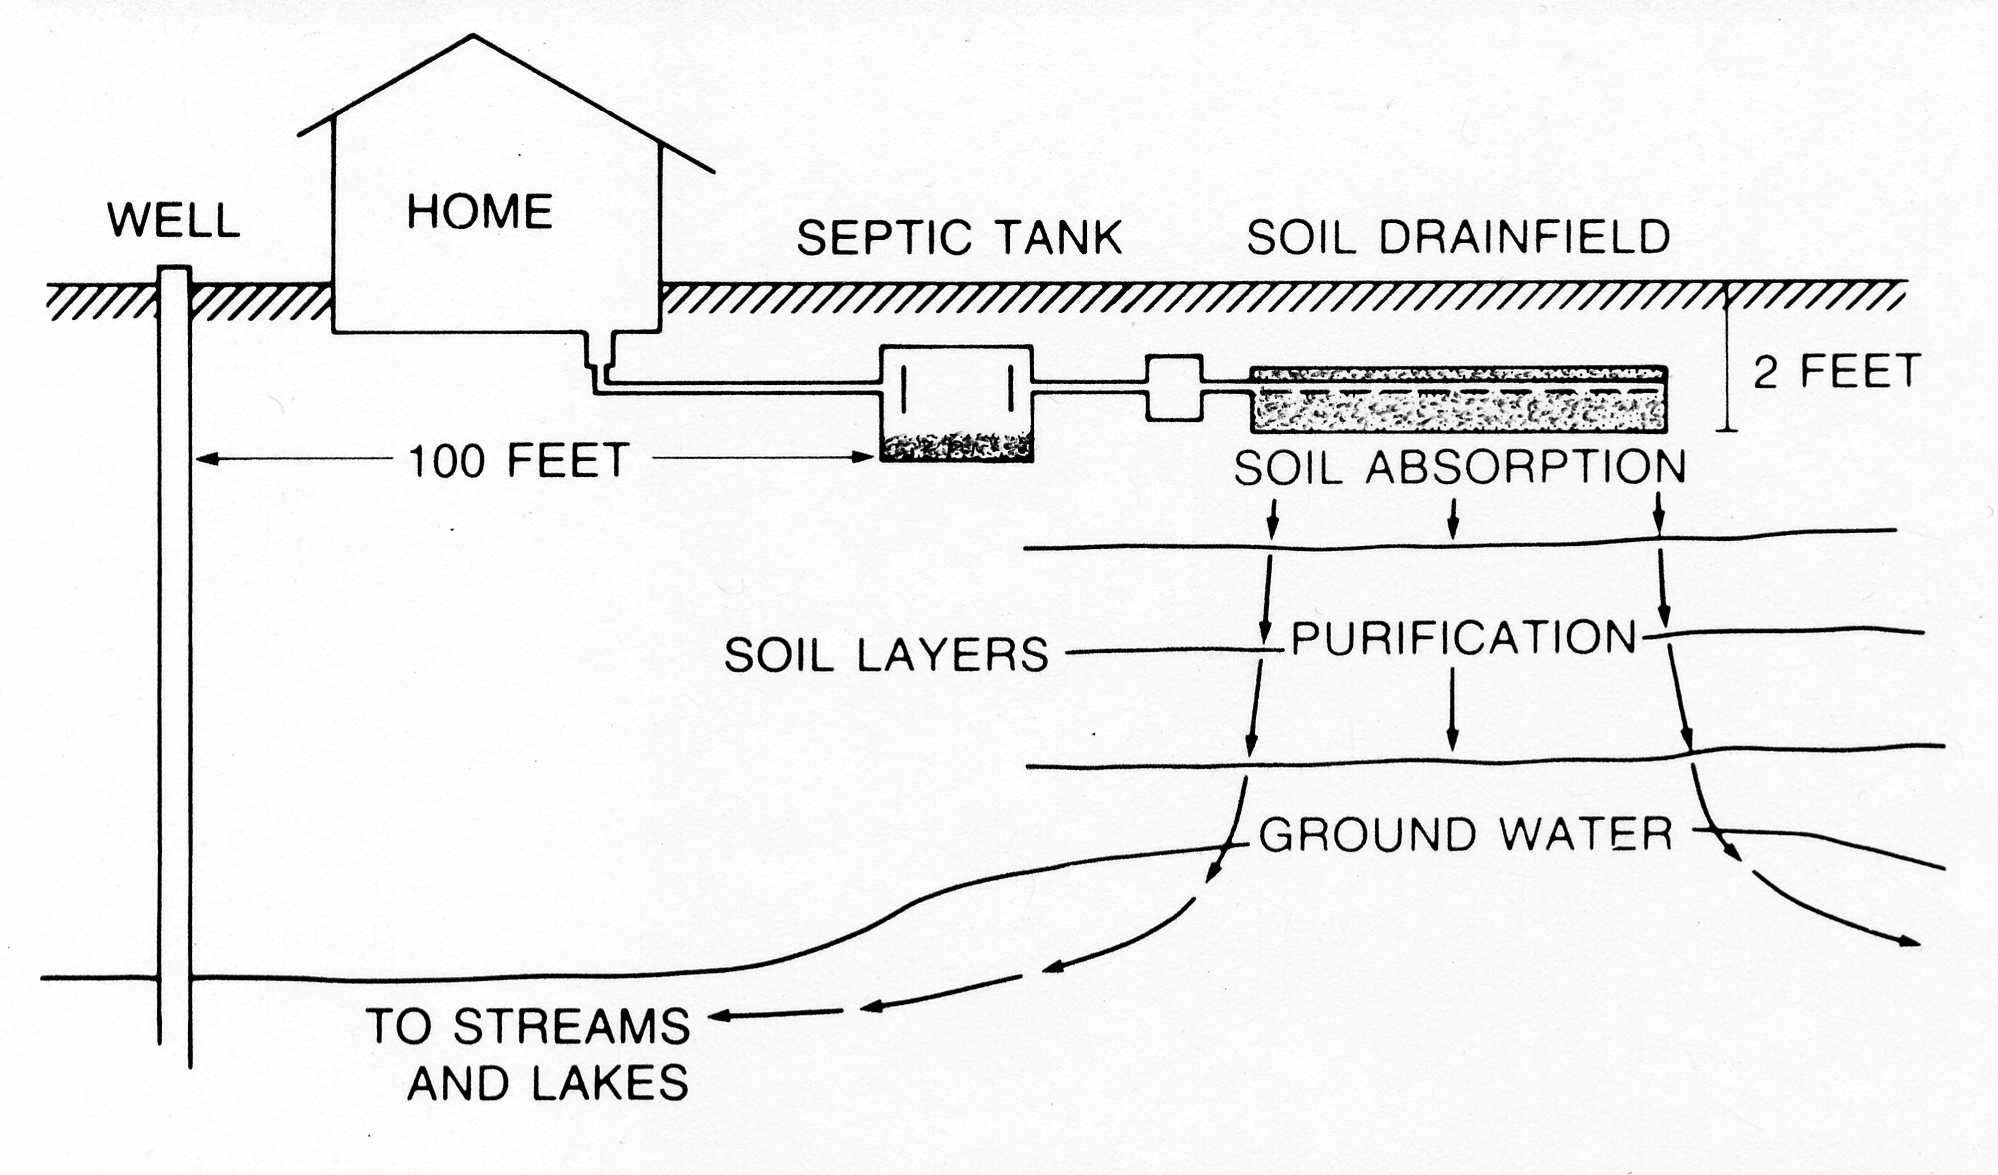 This diagram shows a septic tank-drained treatment system.